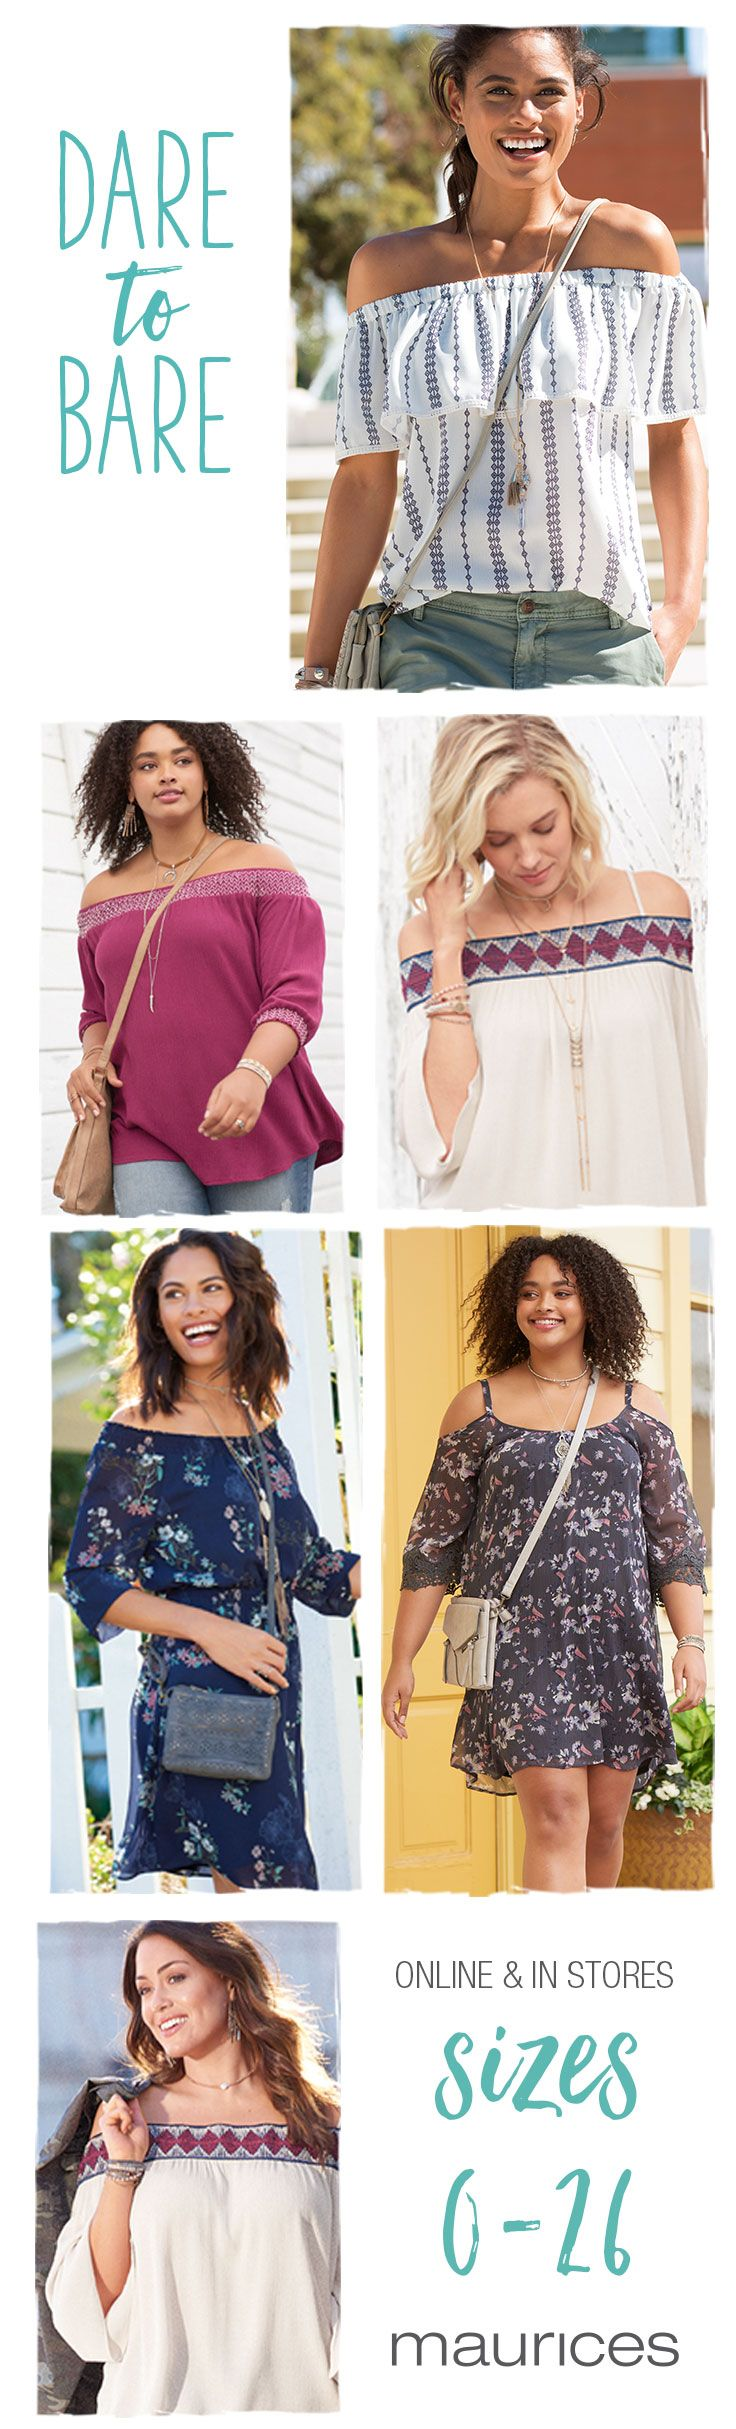 Give your shoulders a reason to shimmy with off-the-shoulder tops in sizes 0-26. Plus, say hello to FREE shipping when you pick up in store or on orders $50 or more and FREE returns to any one of our 1,000 stores.